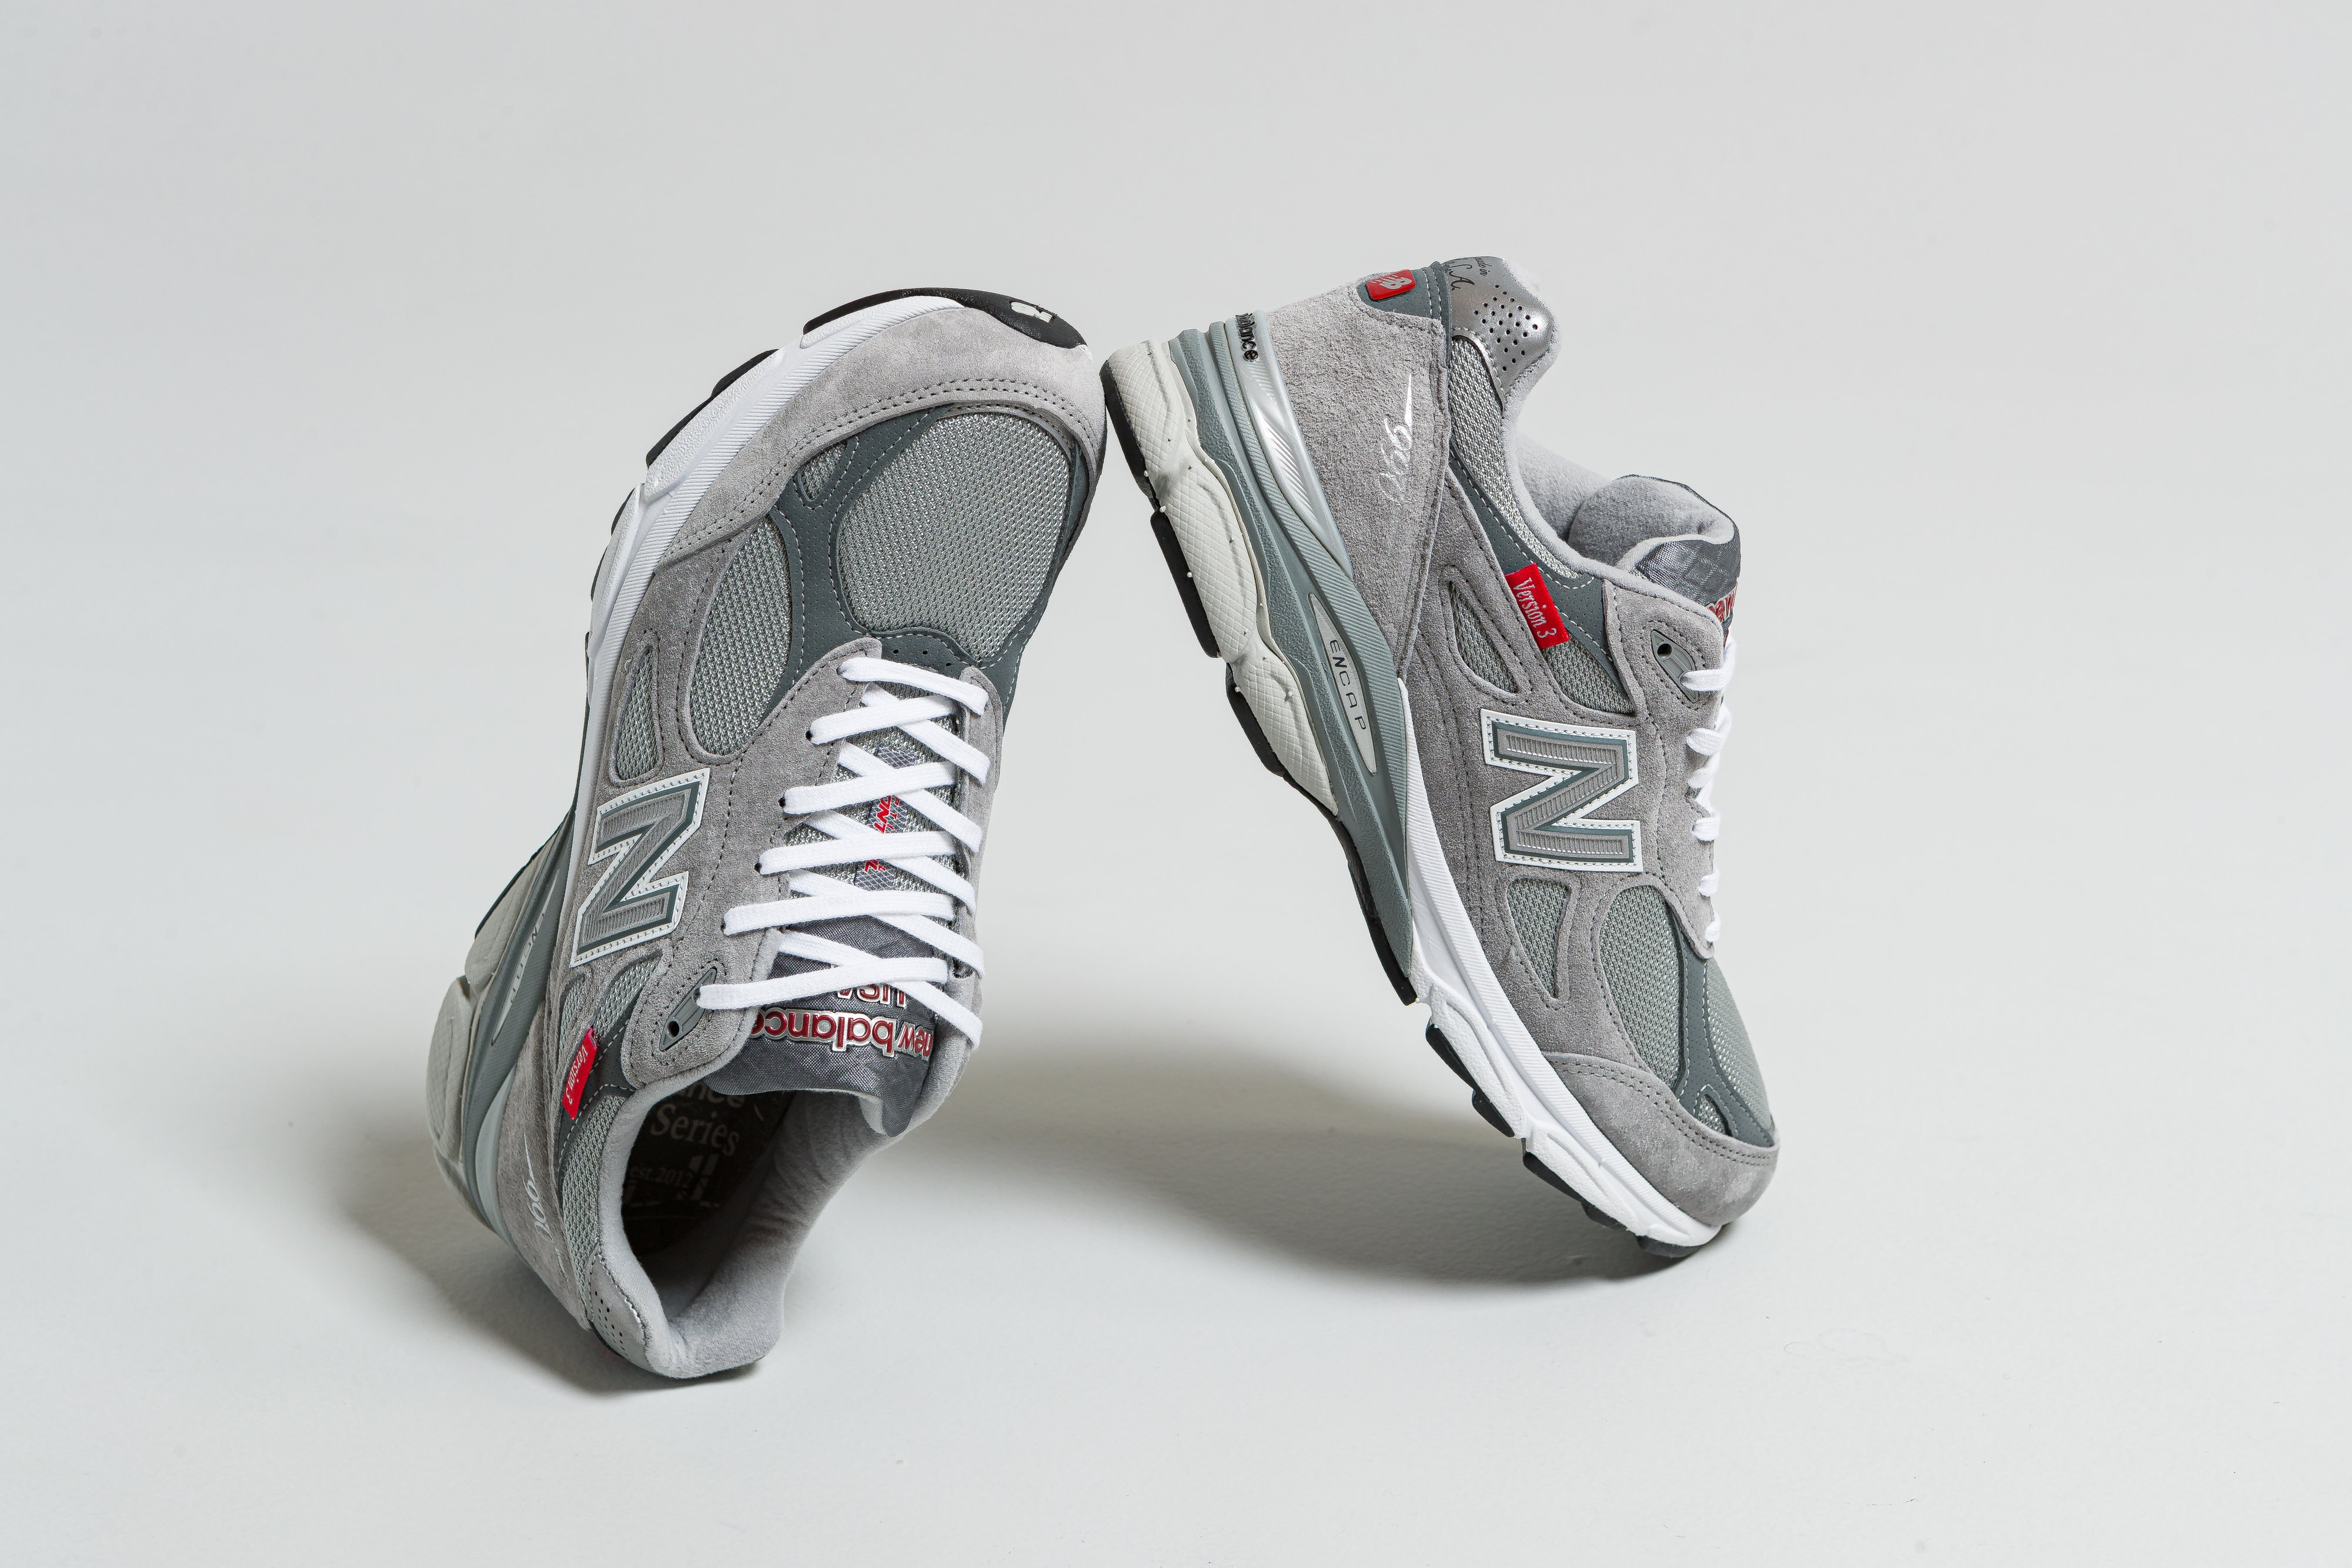 Up There Launches - New Balance M990VS3